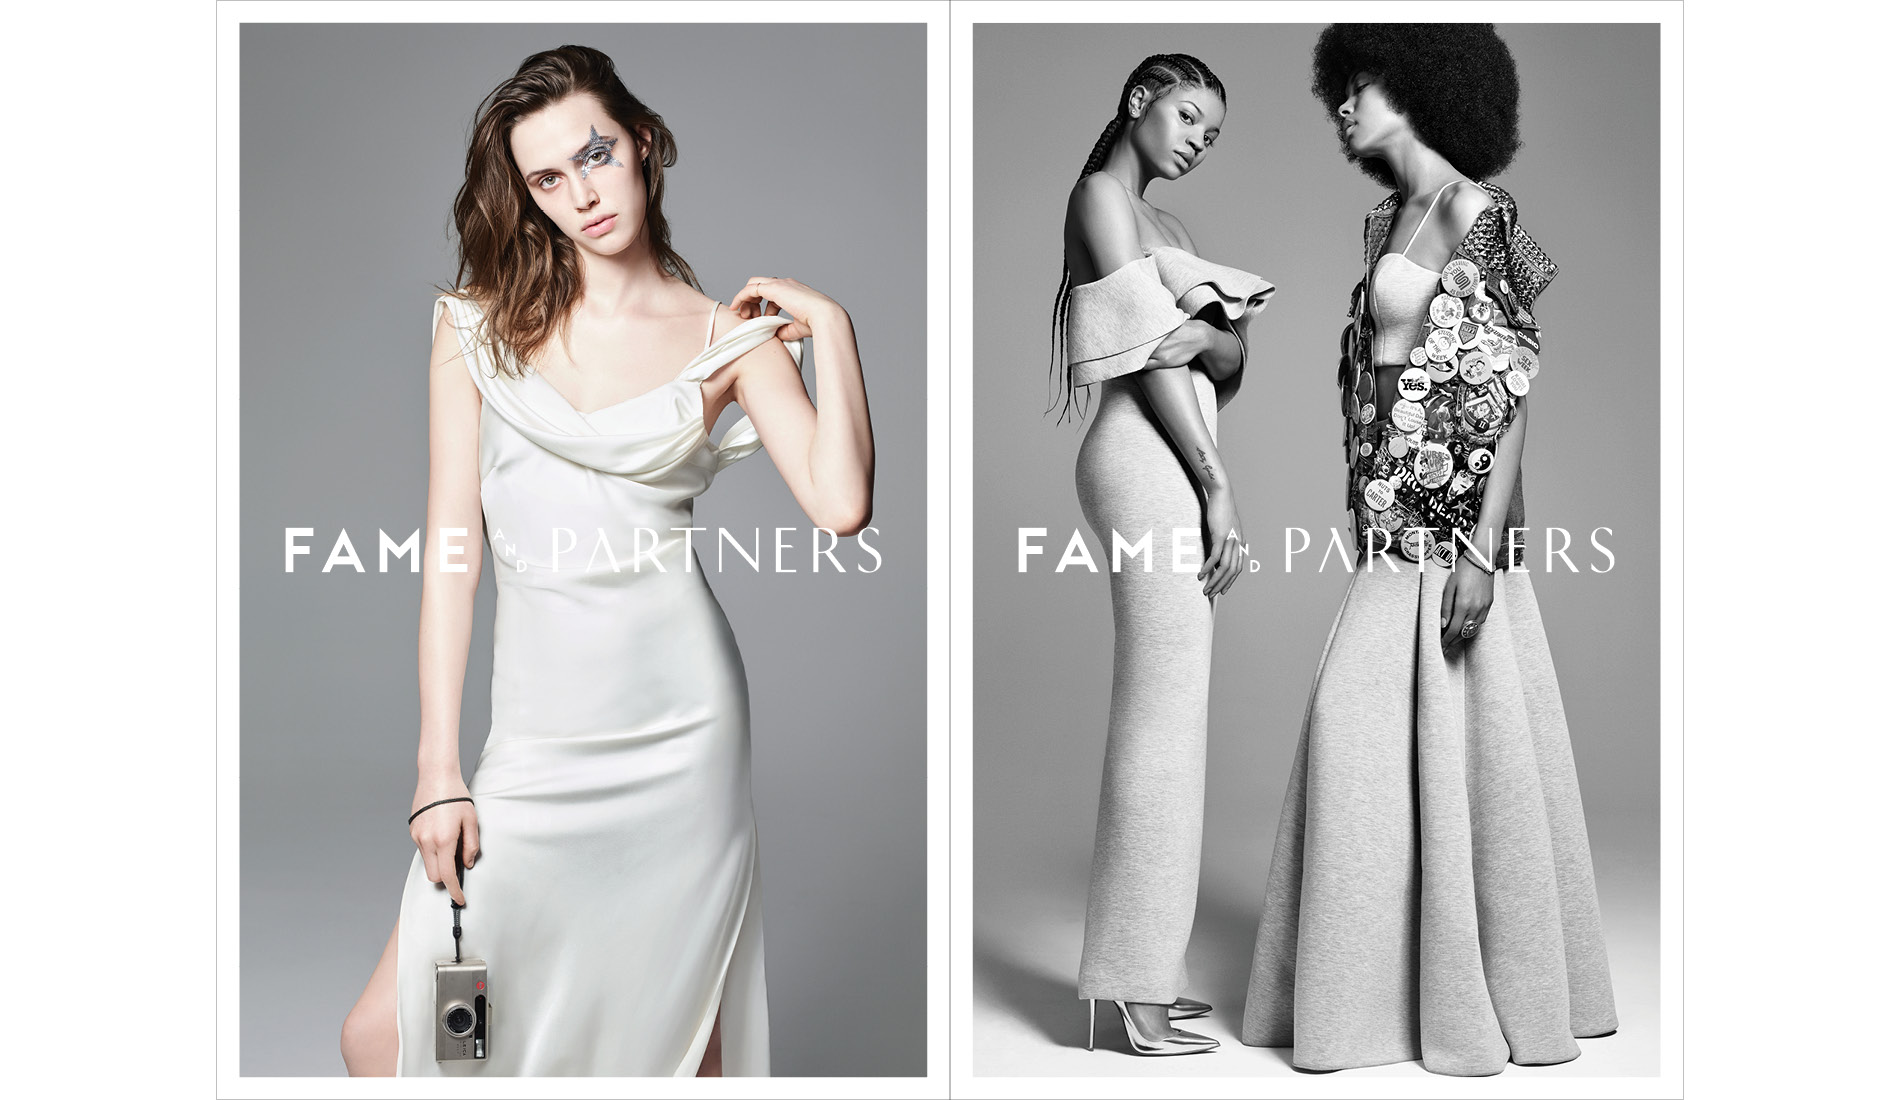 Models for Fame and Partners social and out of home campaign with creative direction by DTE Studio